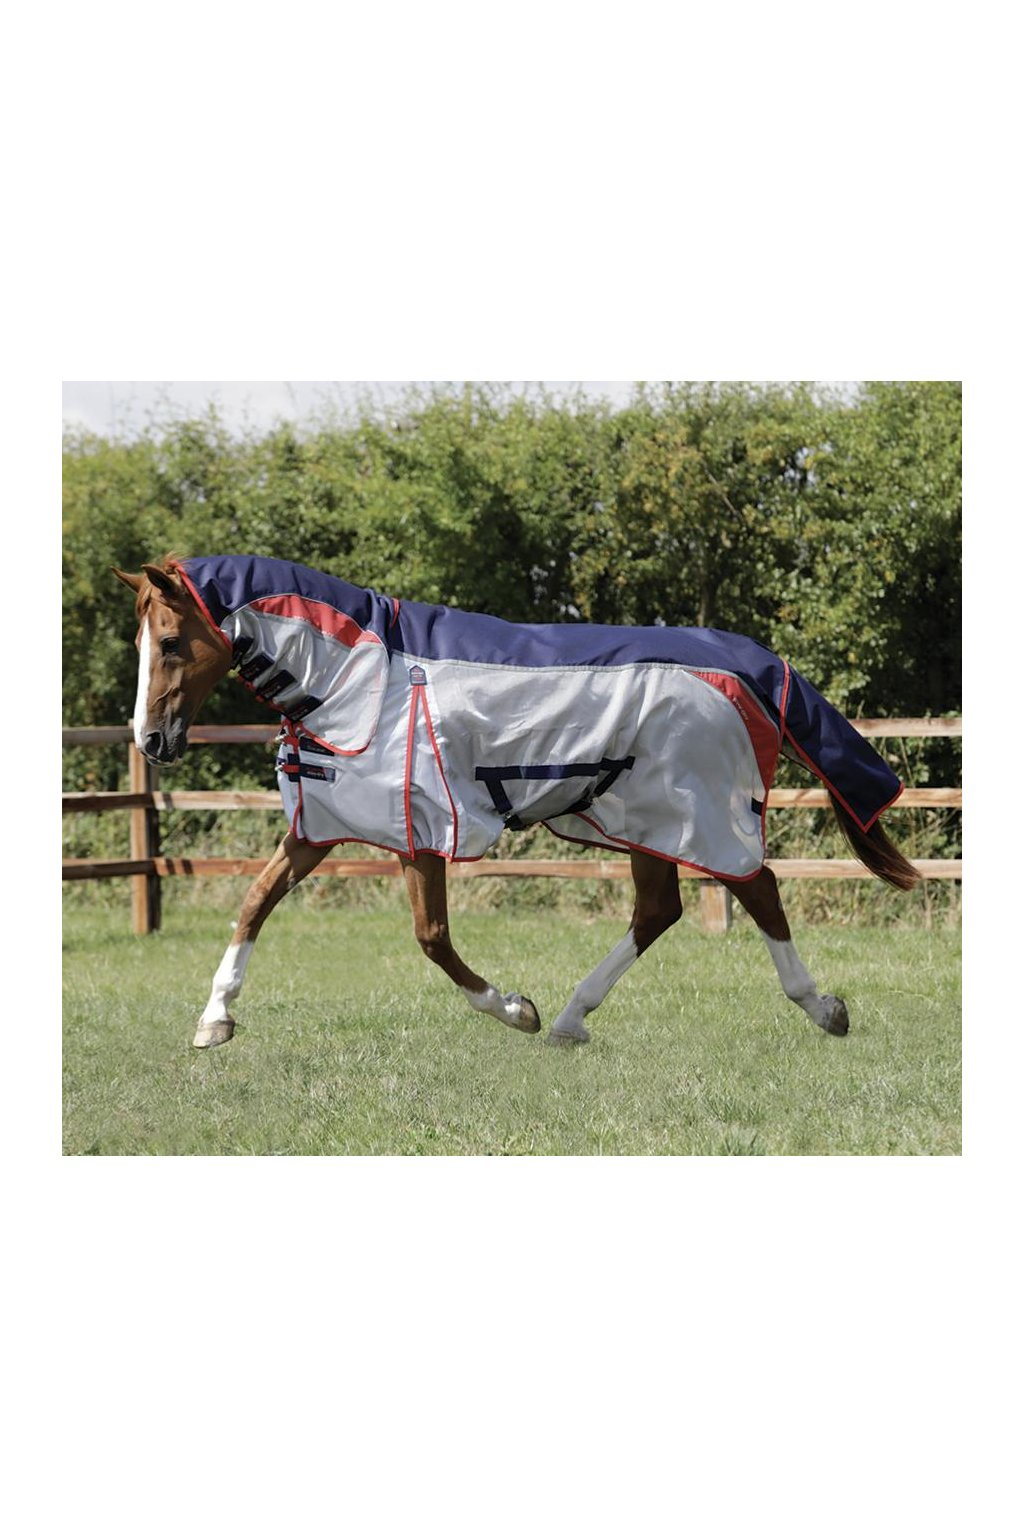 SS19 Buster Stay Dry Super Lite Fly Rug Navy Main Shot RGB 72 zoom